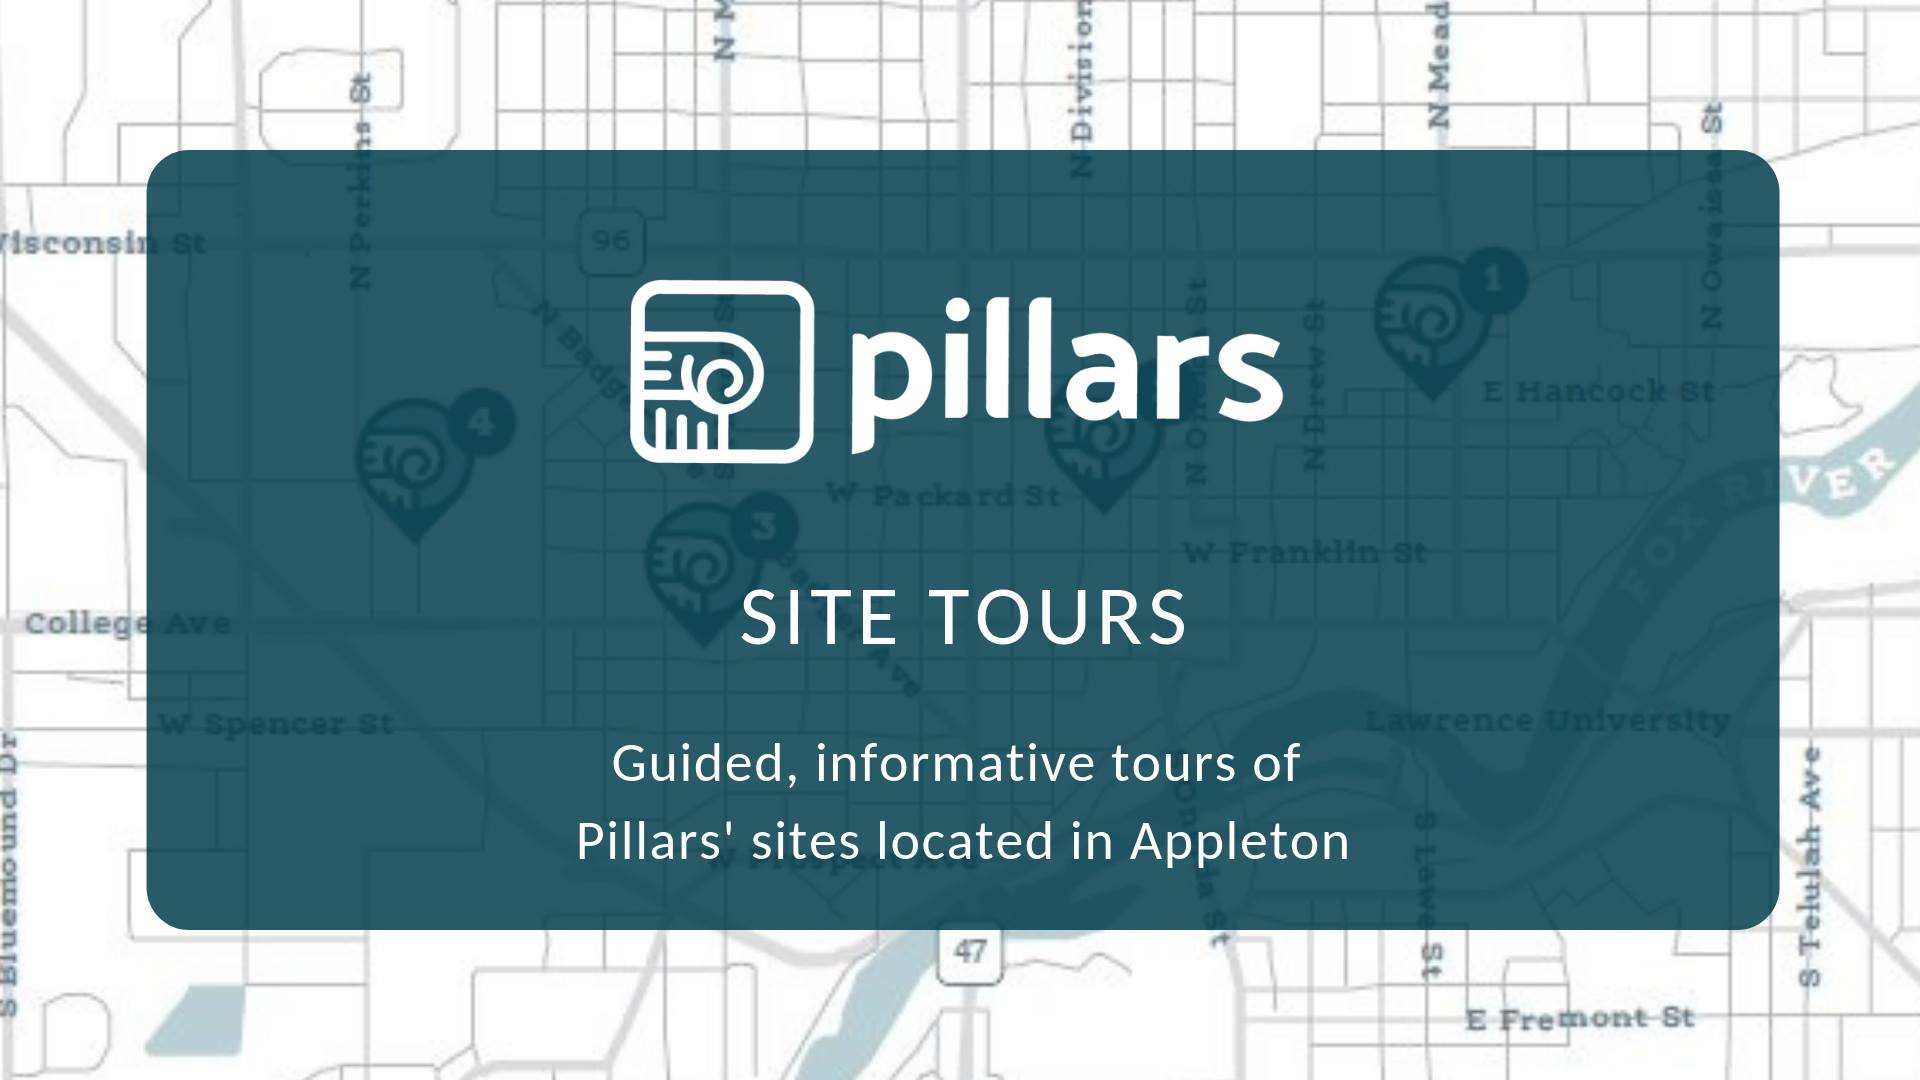 Pillars Site Tours